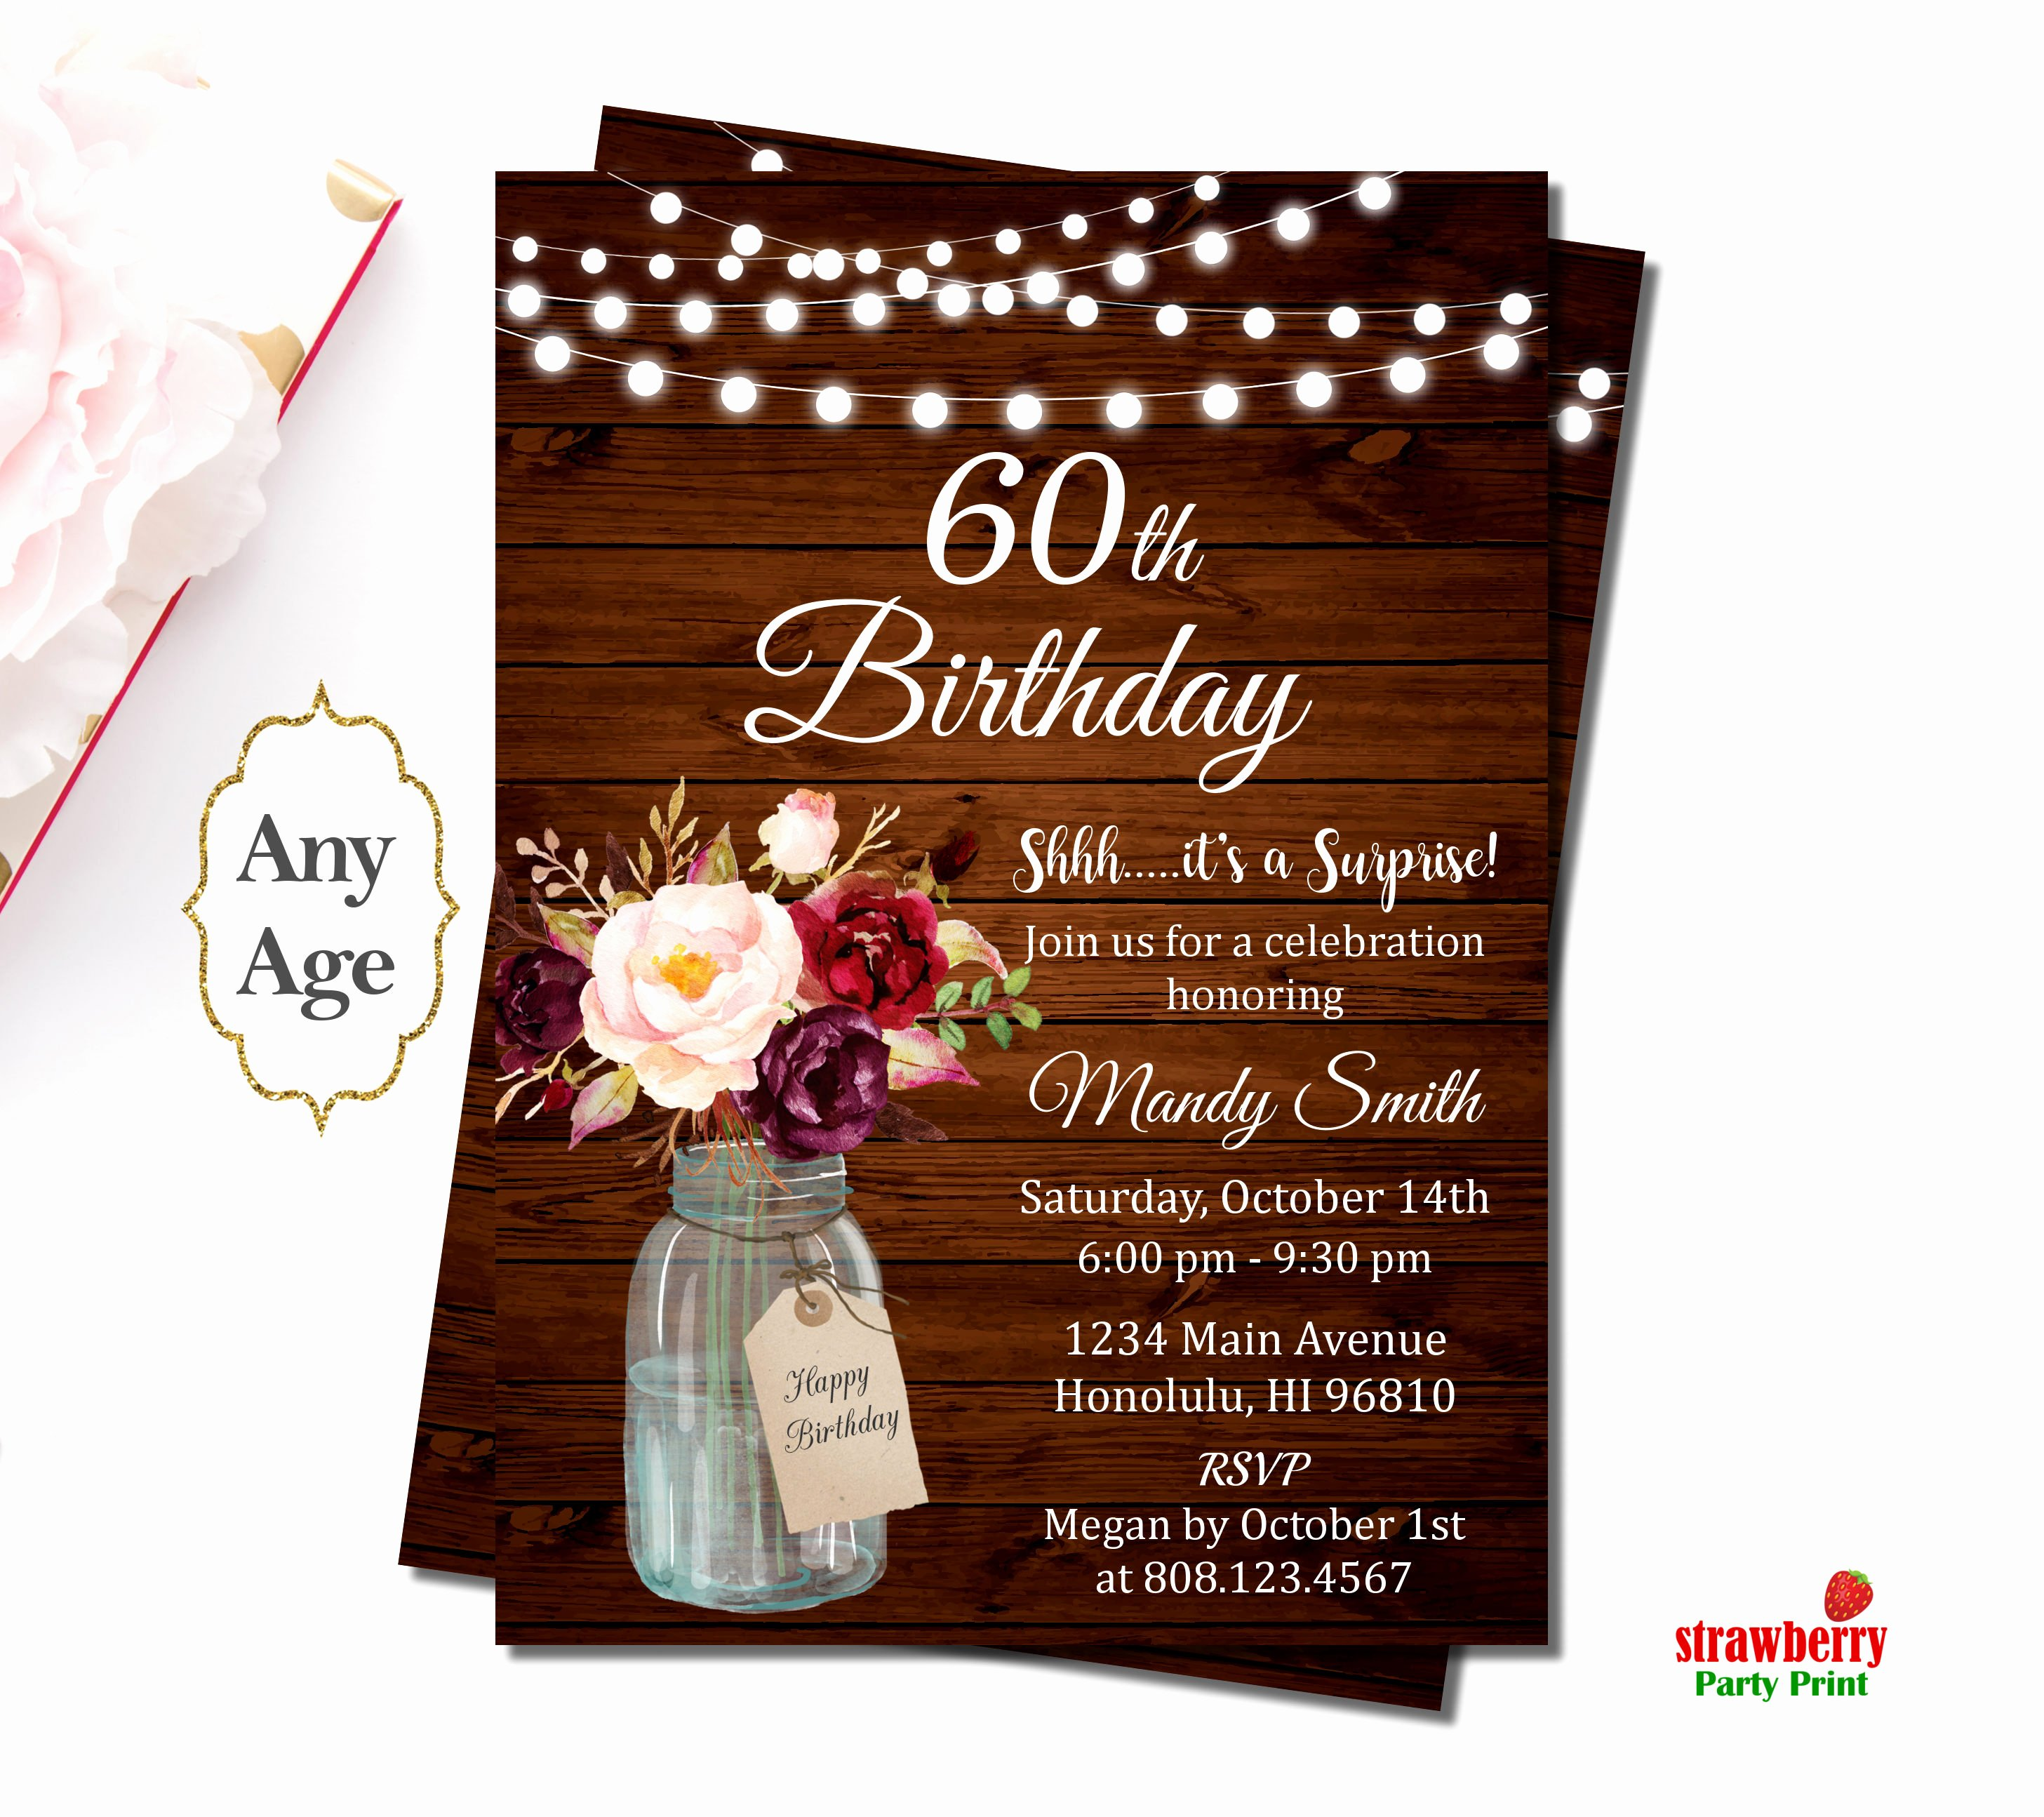 60 Th Birthday Invitation Unique 60th Birthday Invitations for Women Surprise 60th Birthday